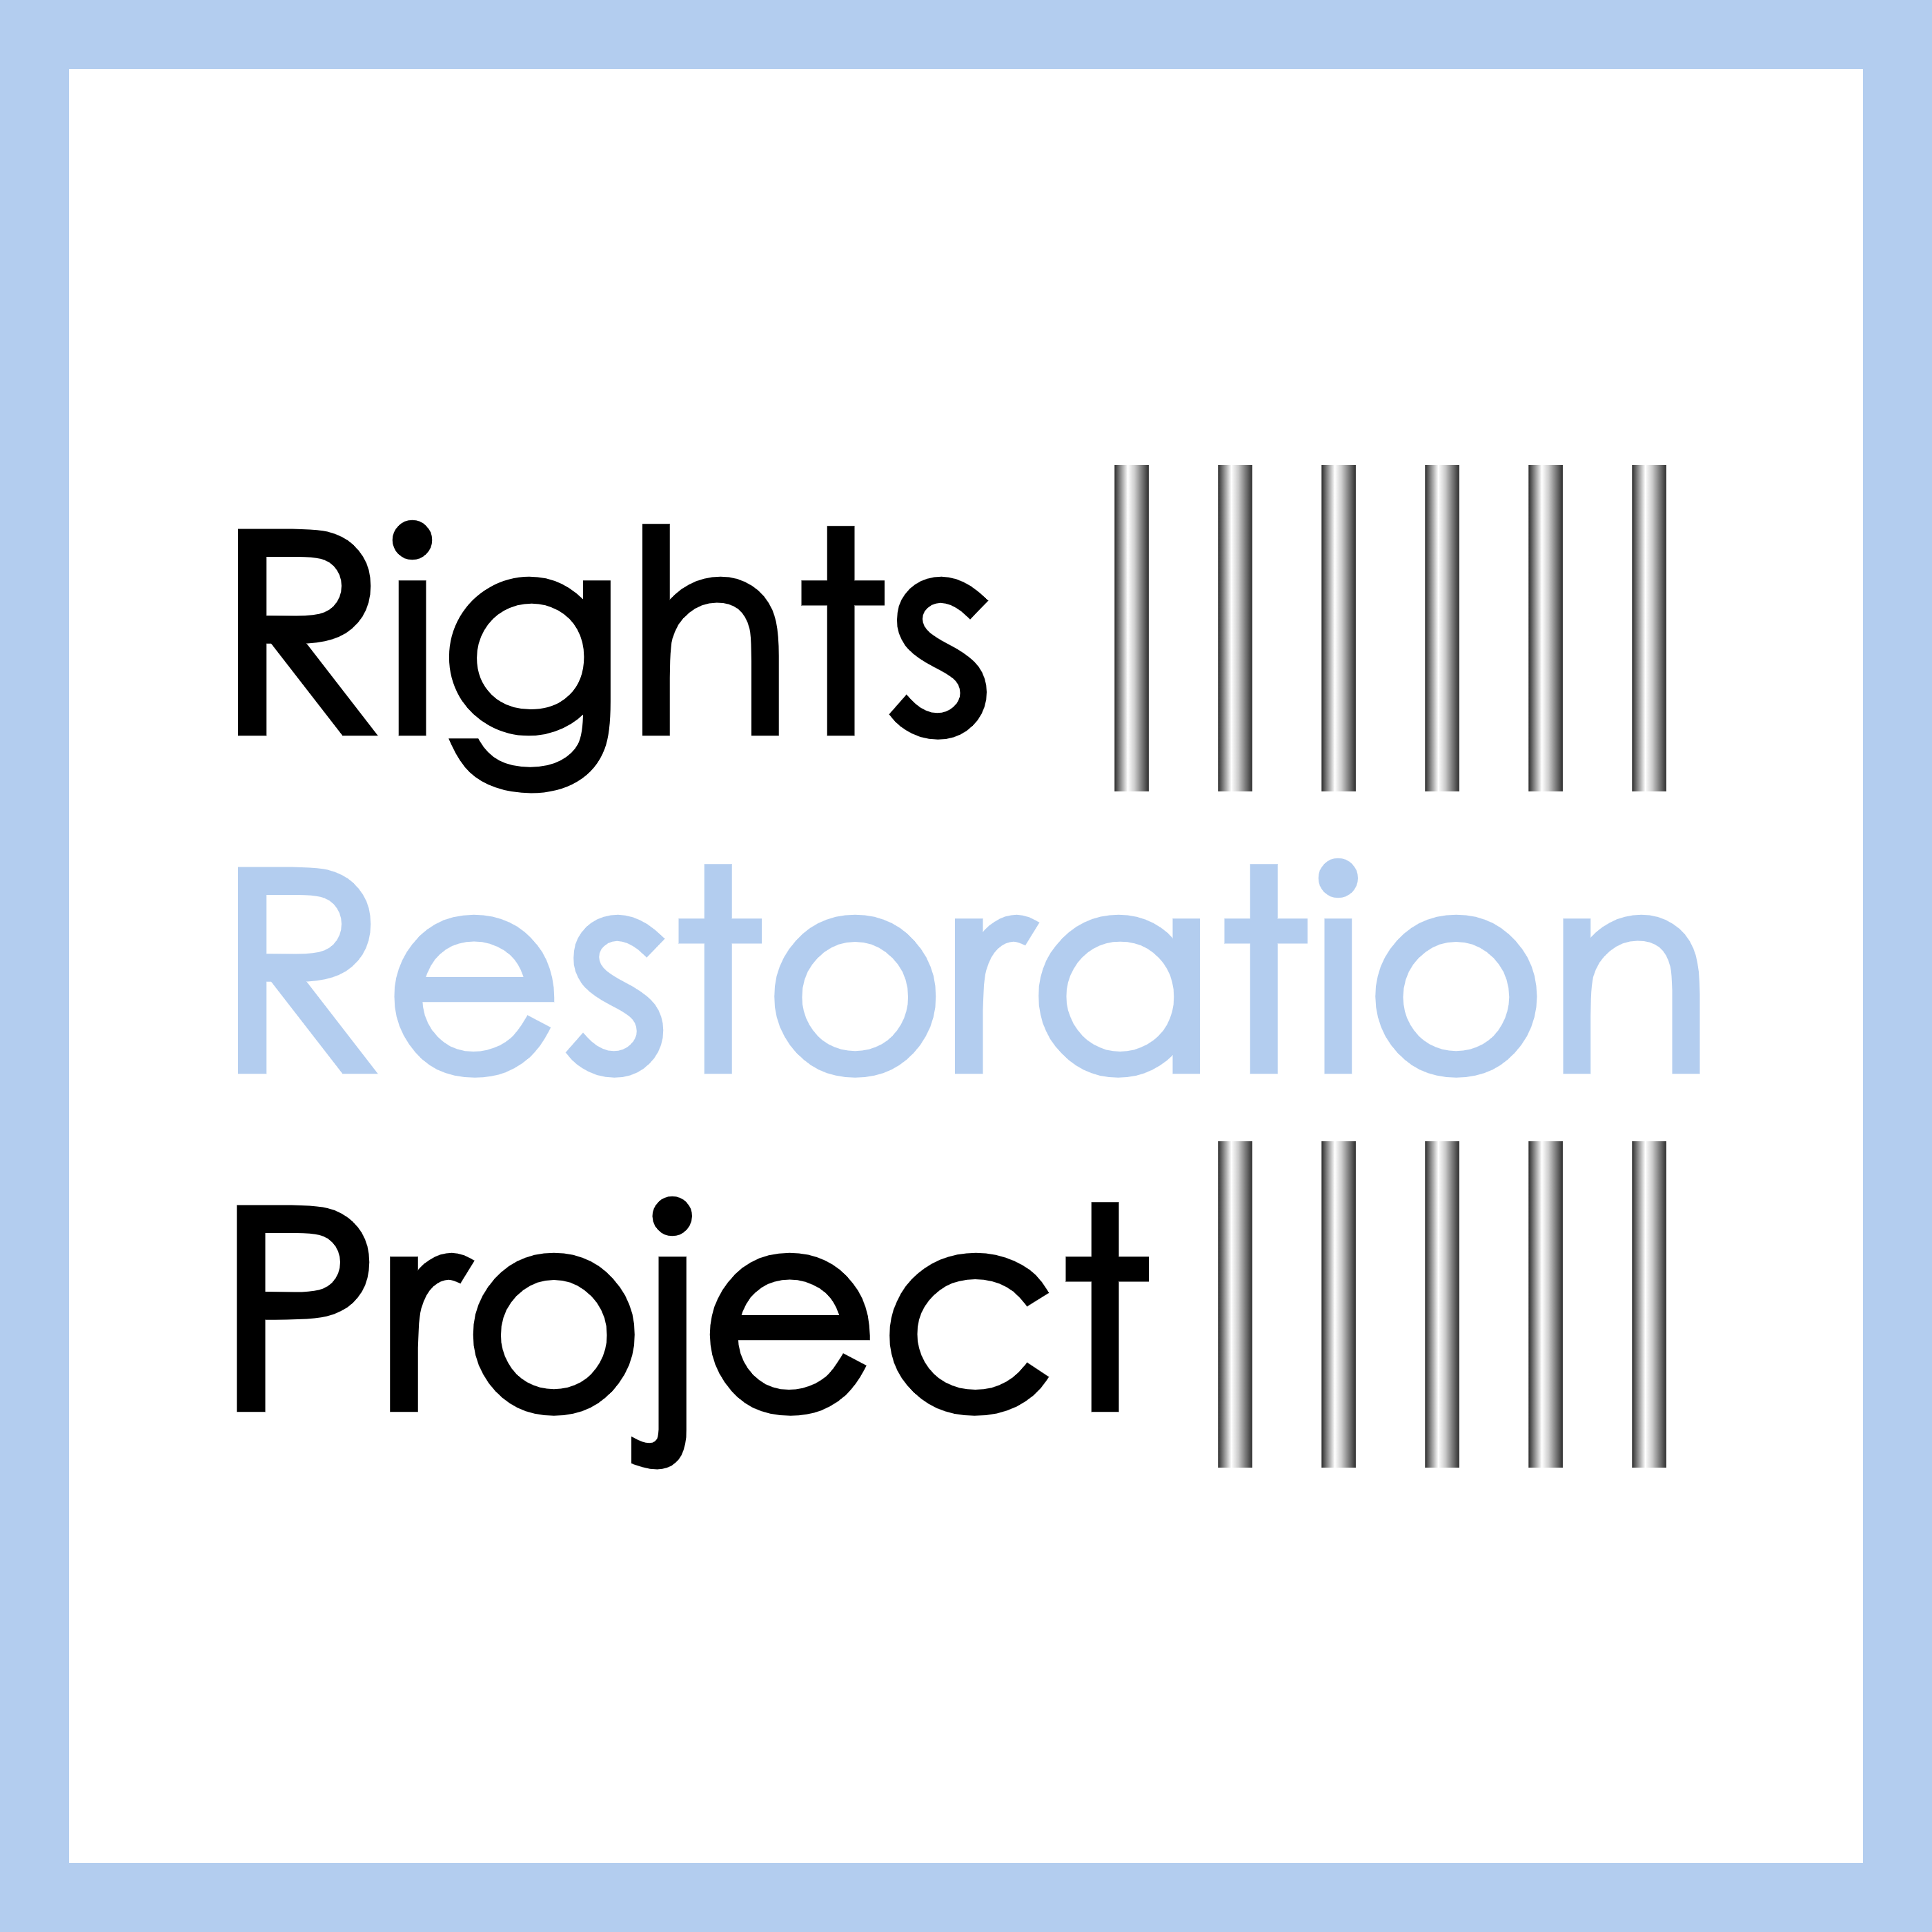 Sponsored link to Rights Restoration Project